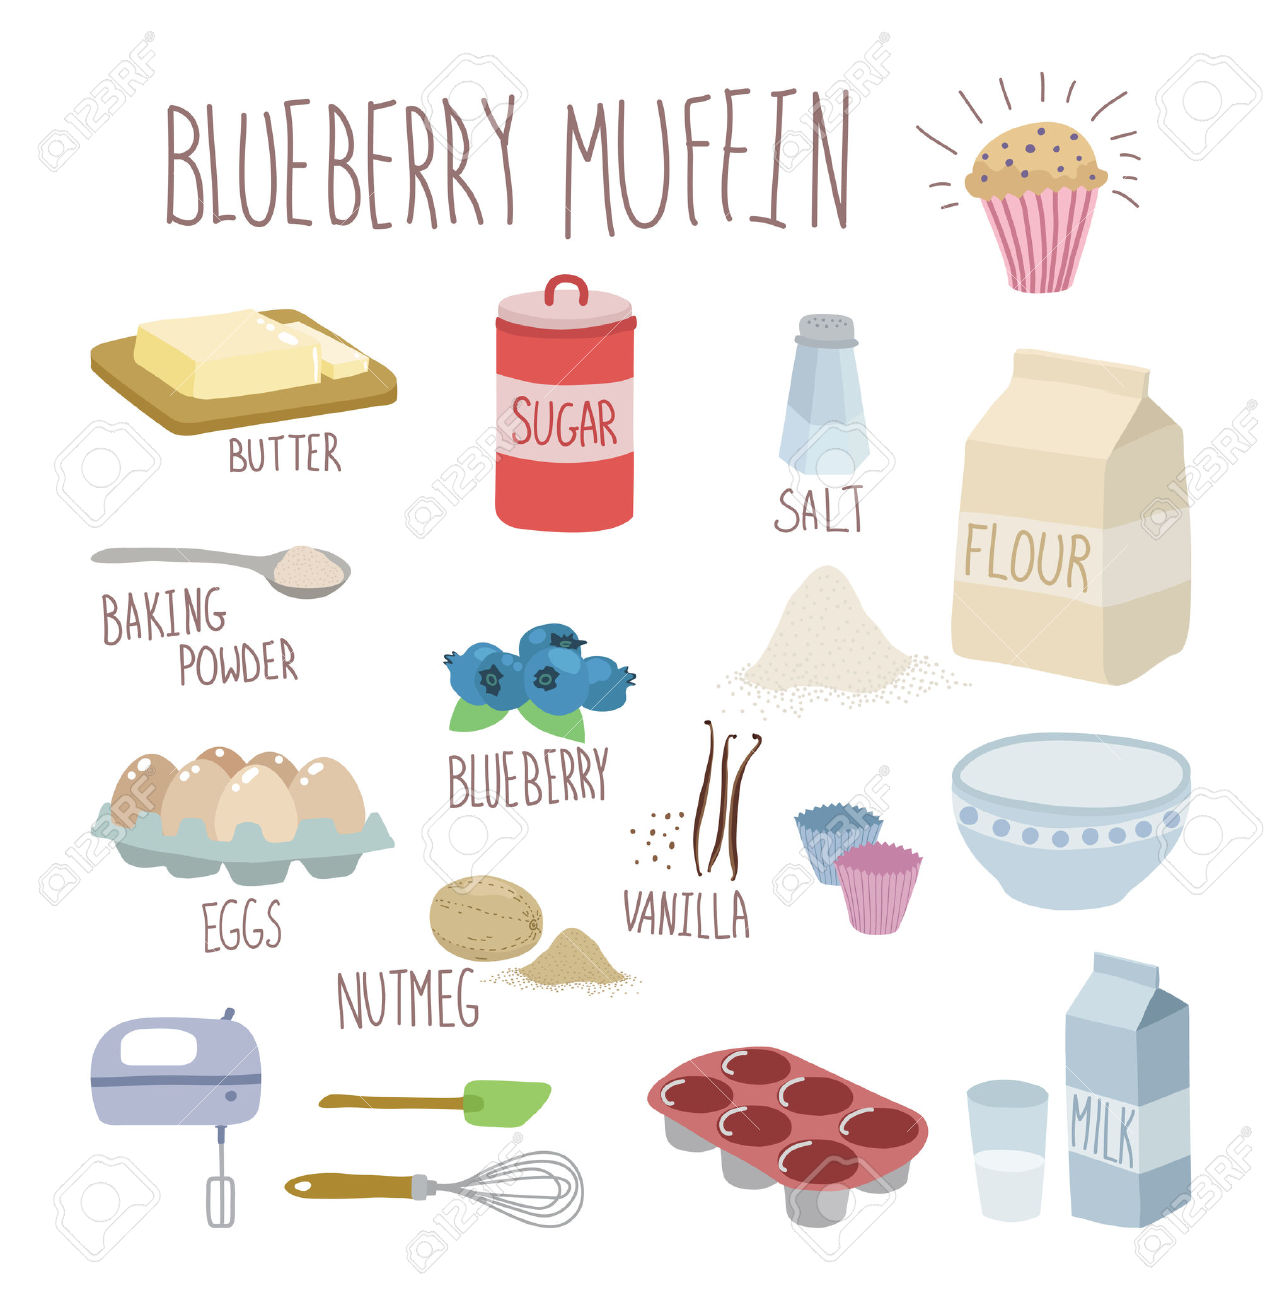 Blueberry Muffin Recipe Royalty Free Cliparts, Vectors, And Stock.